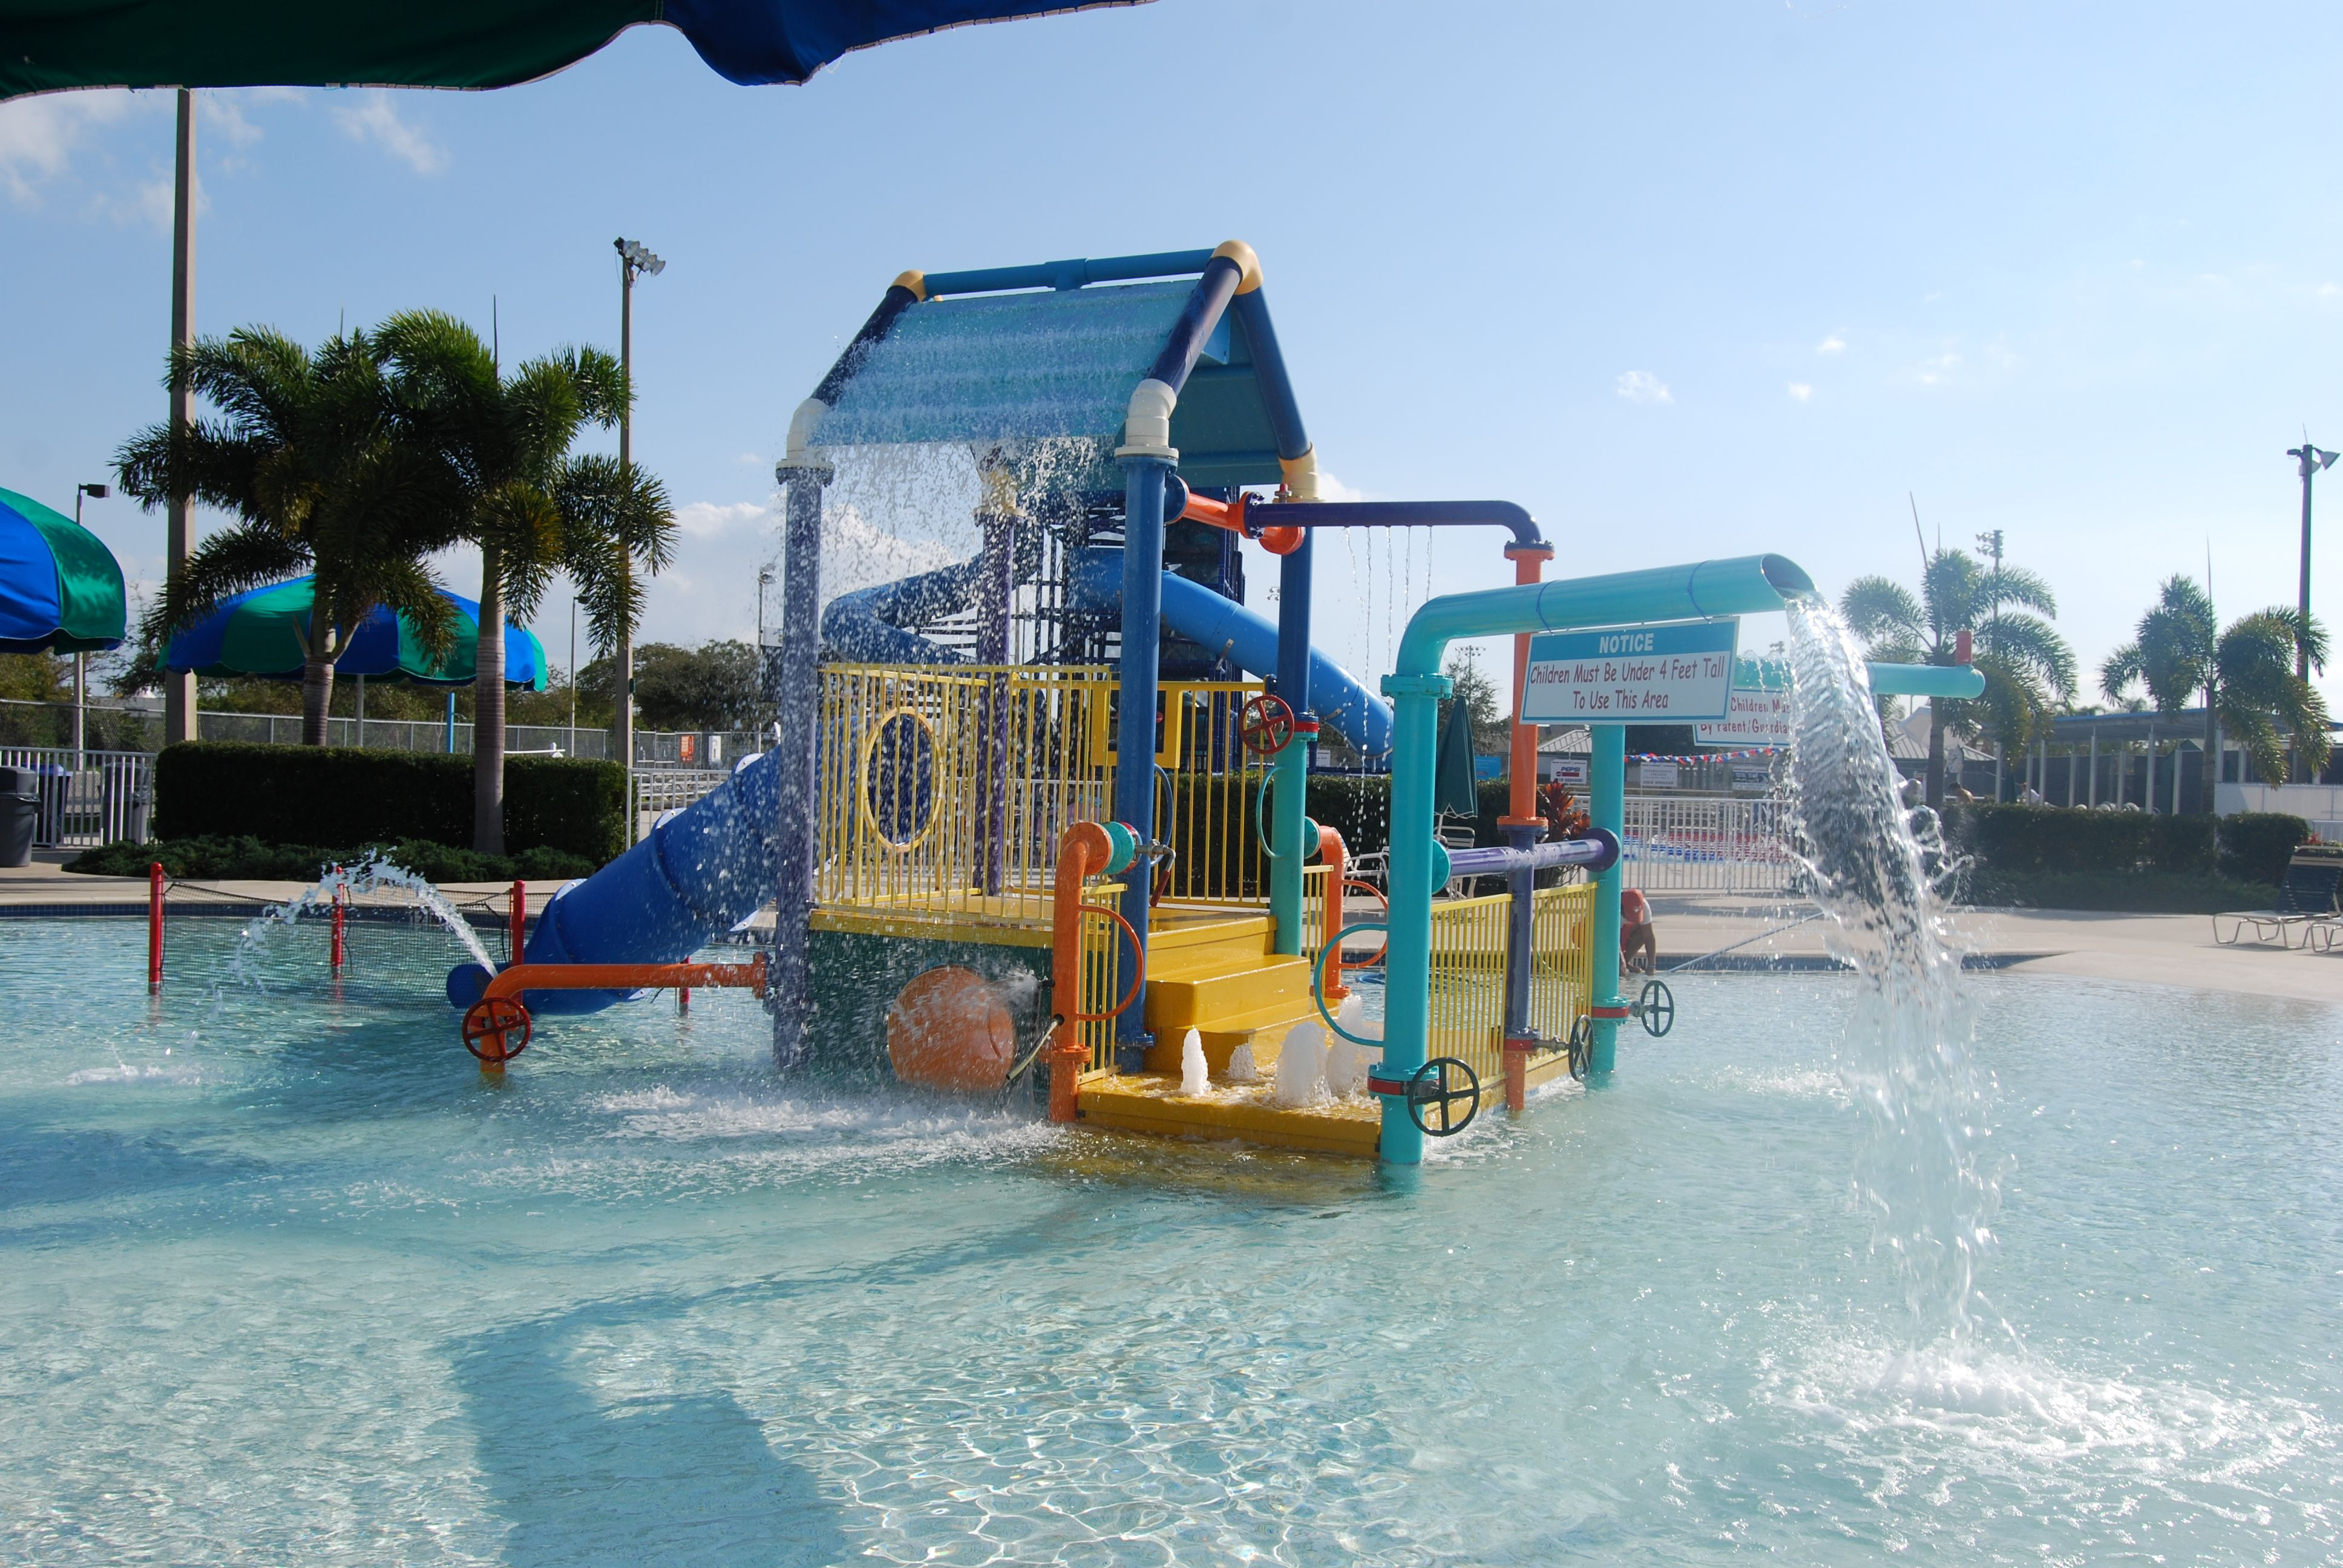 The Kiddie Pool At The Fort Myers Aquatic Center In Fort Myers Fl